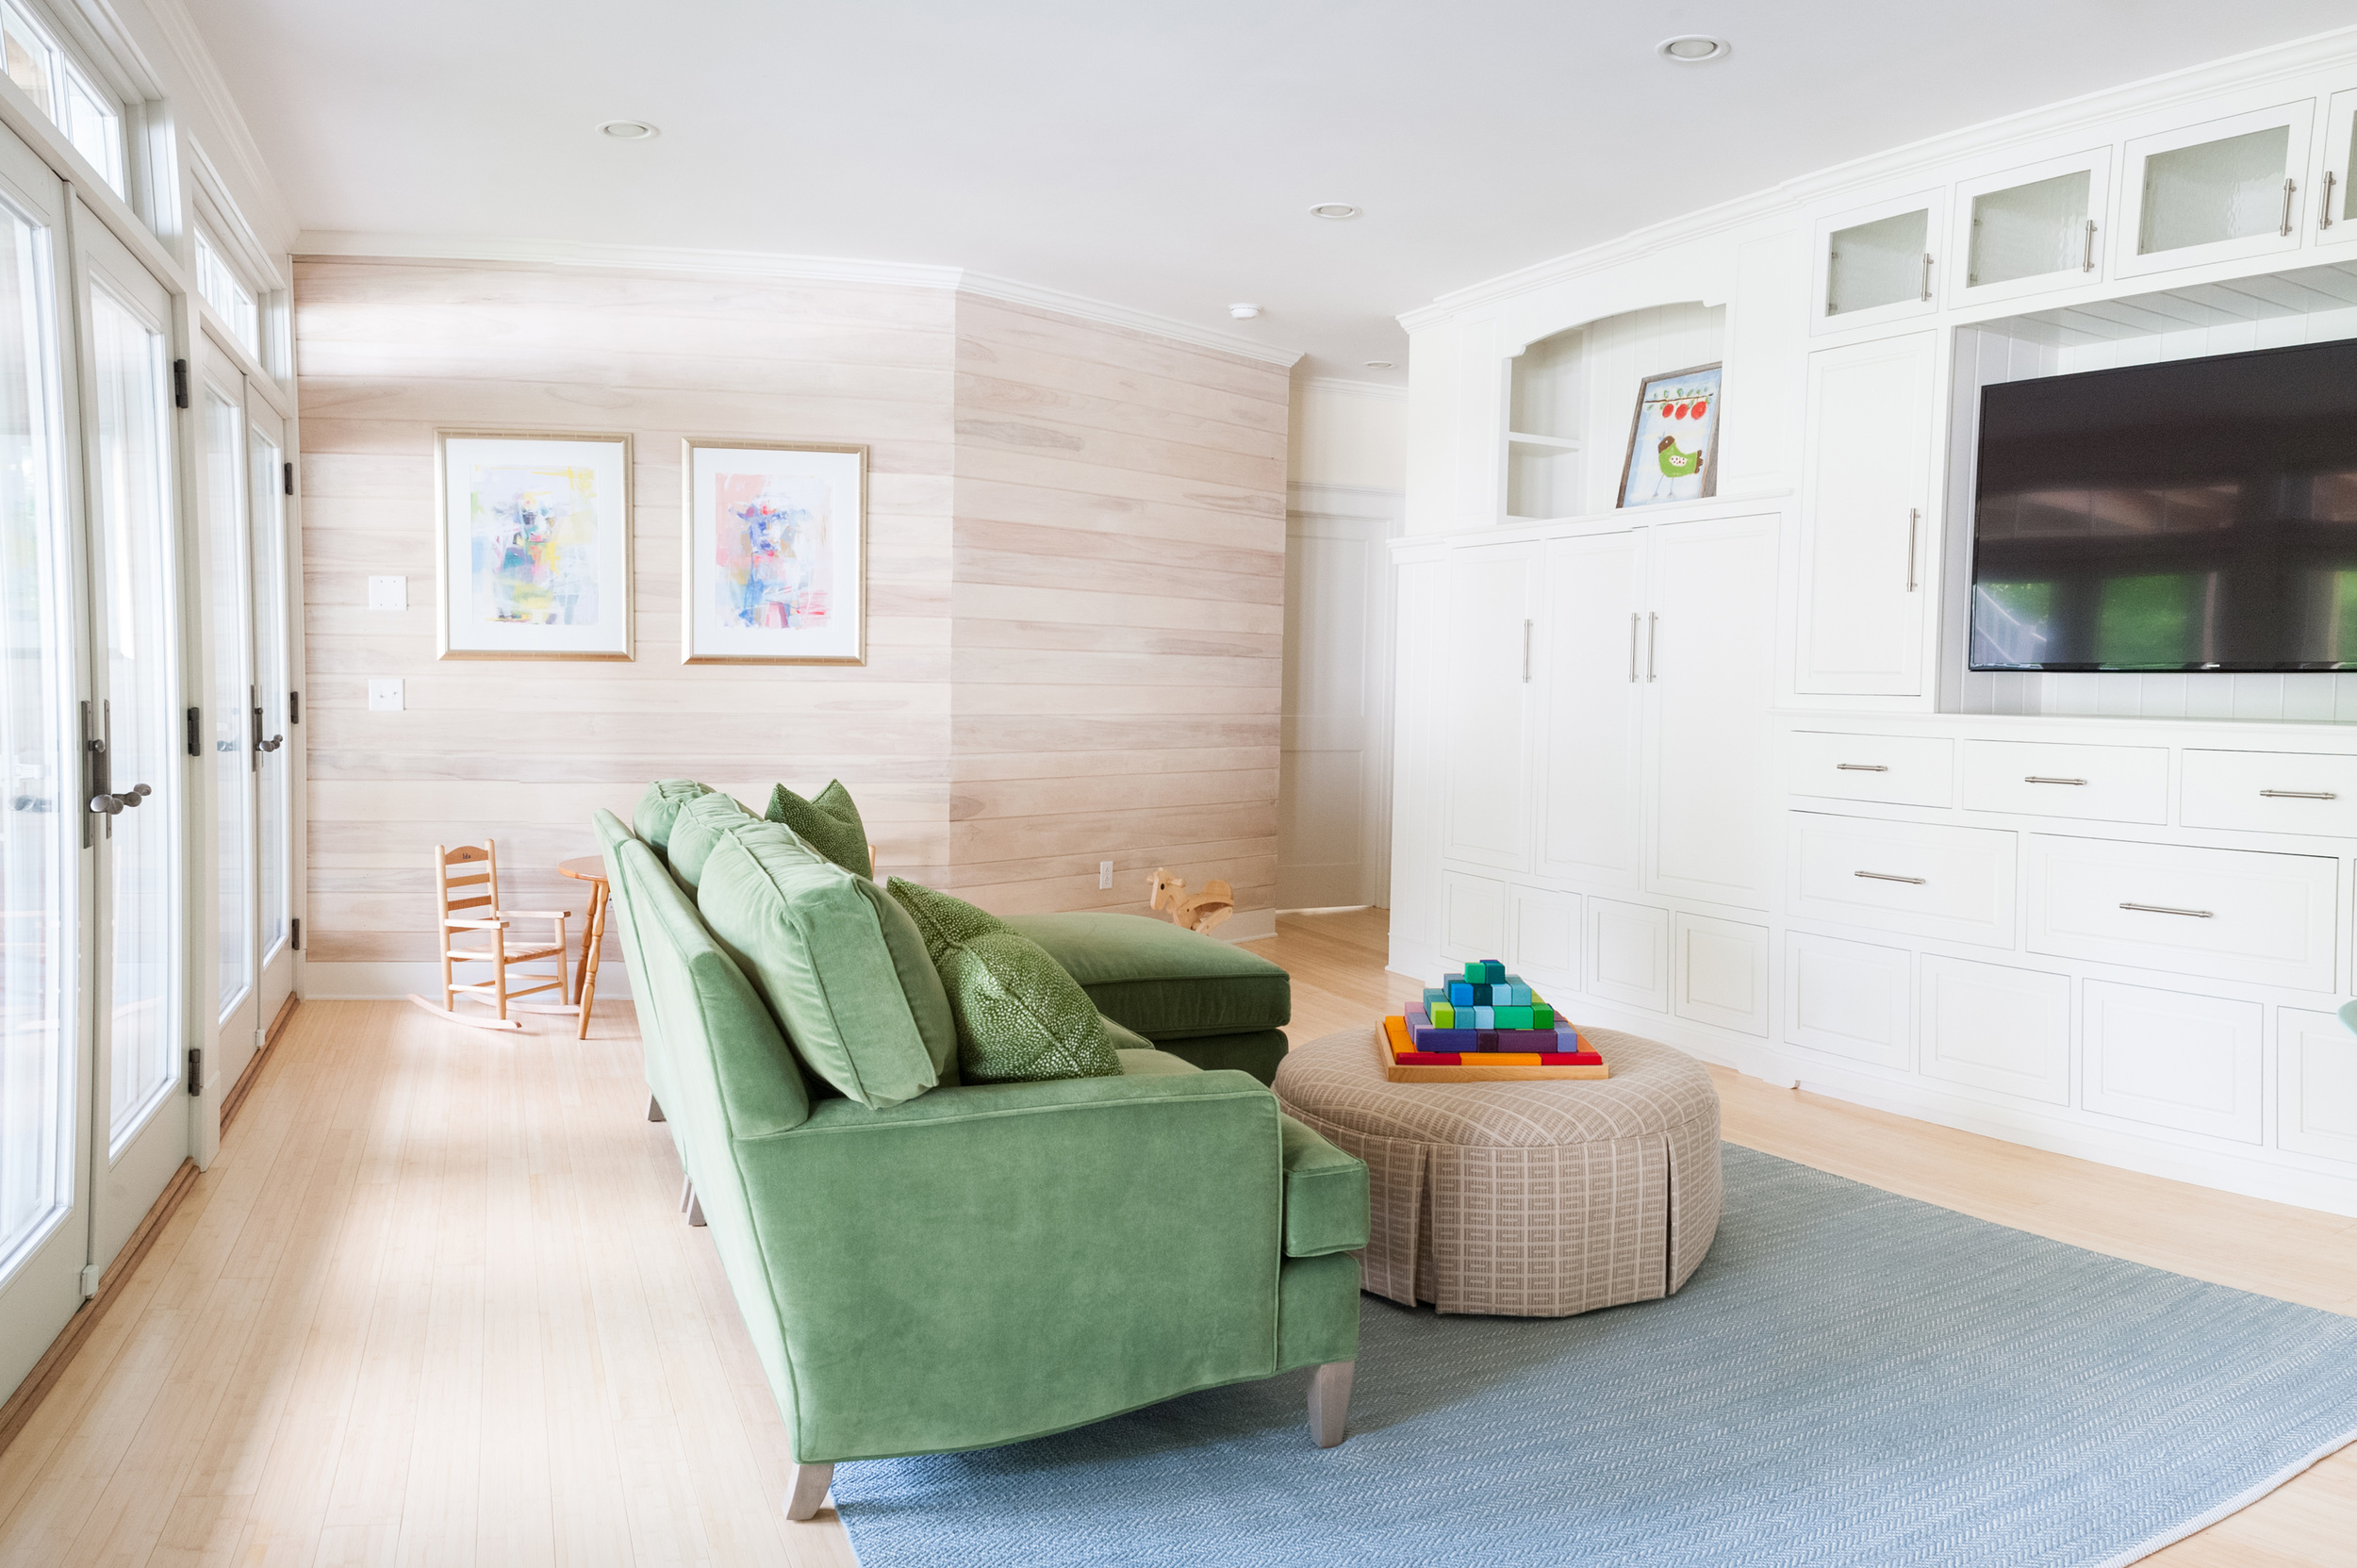 light_and_bright_living_room_with_green_couch